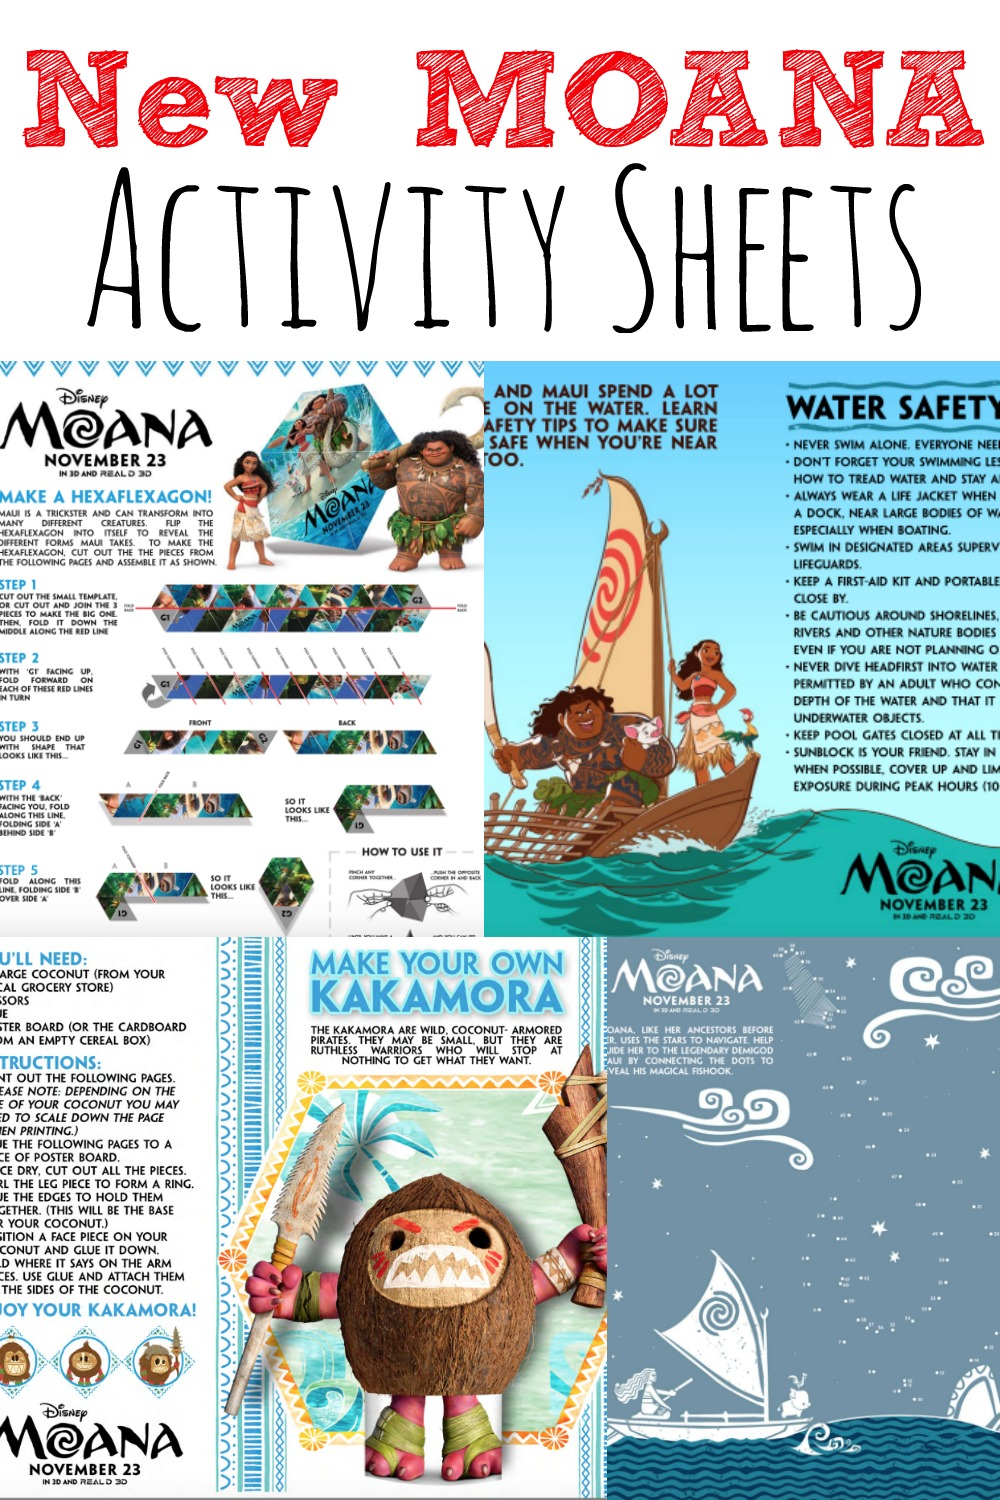 New MOANA Activity Sheets #MoanaEvent